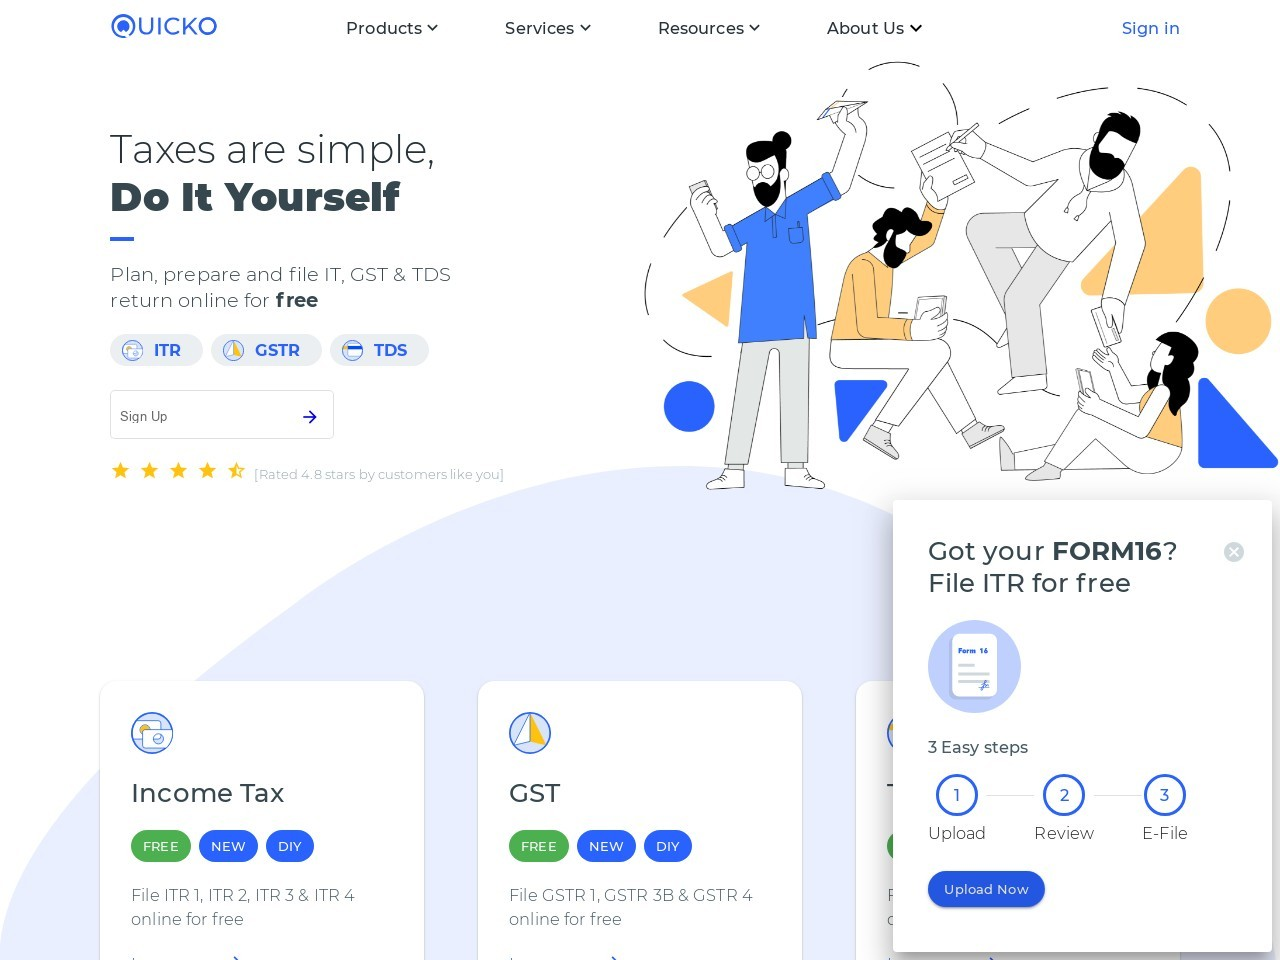 Pitch for Quicko - The Startup Pitch